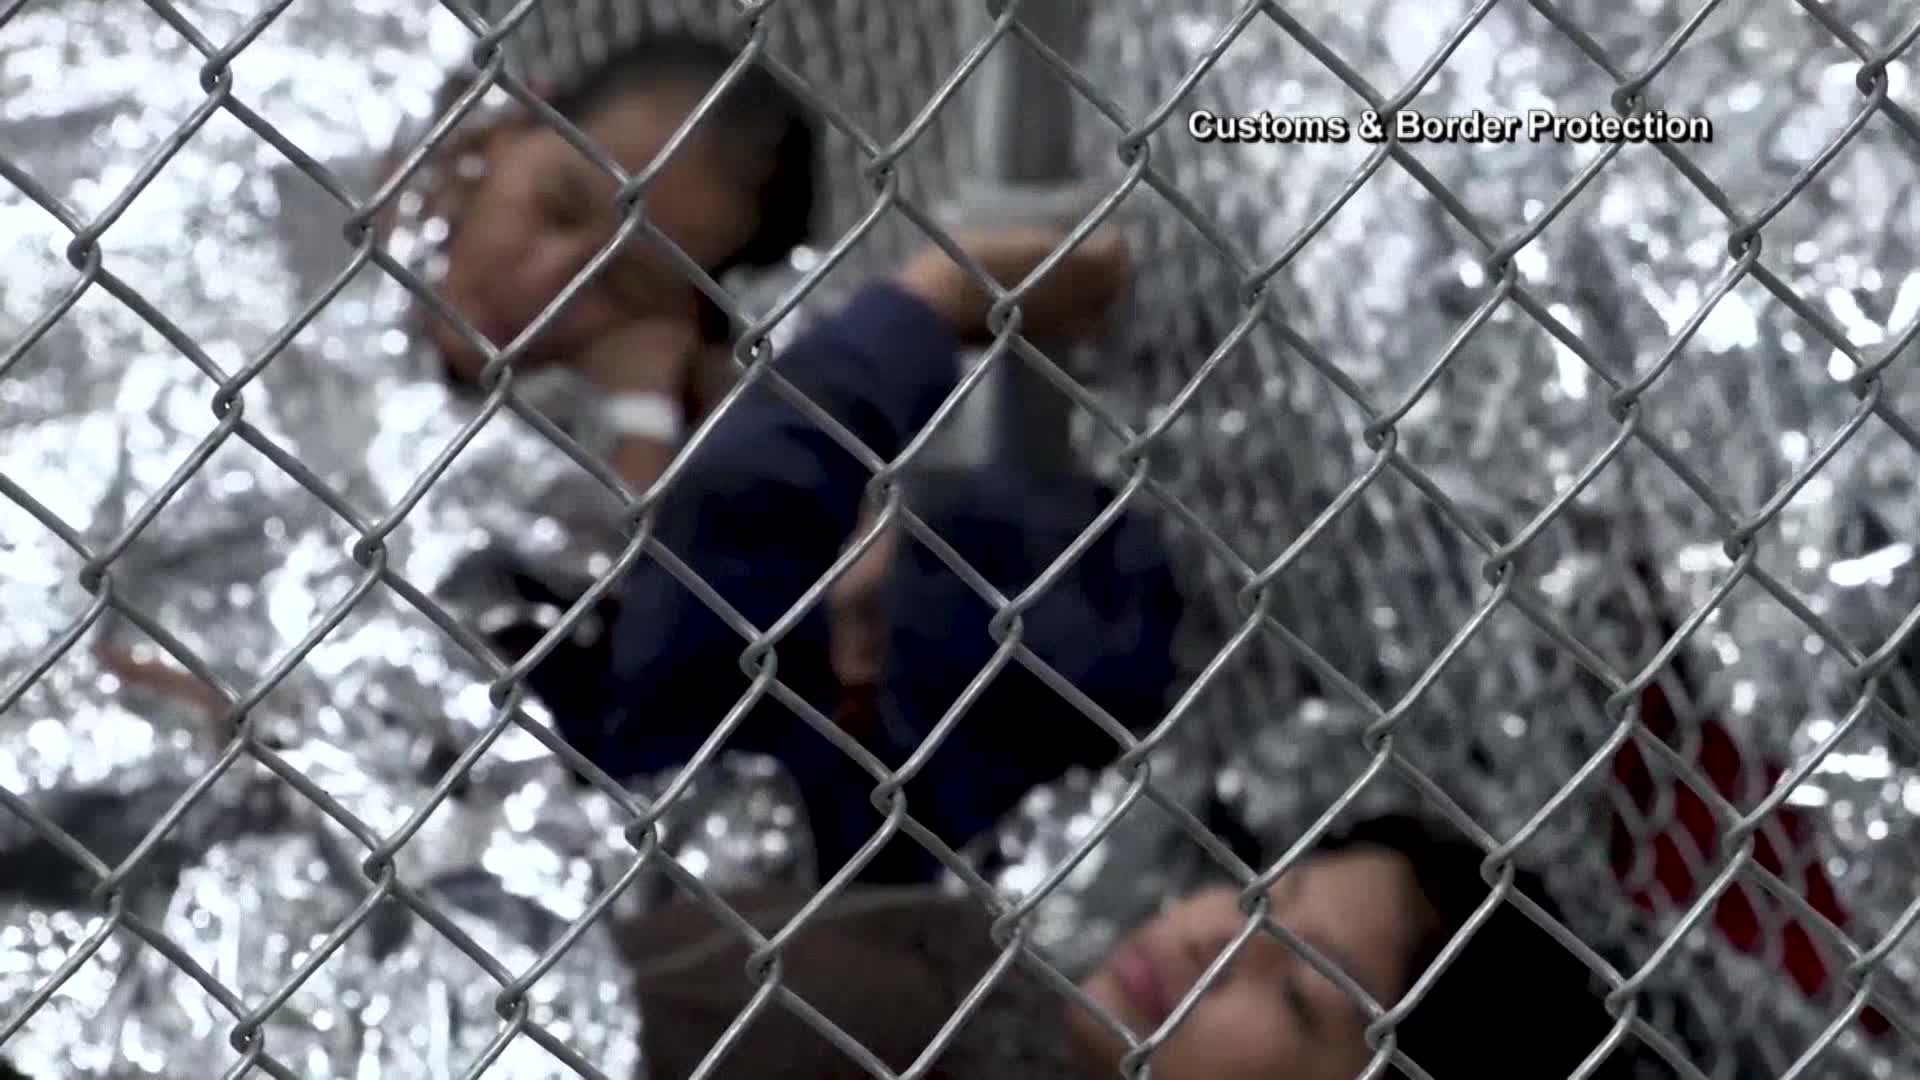 Migrant children at the border-846655081